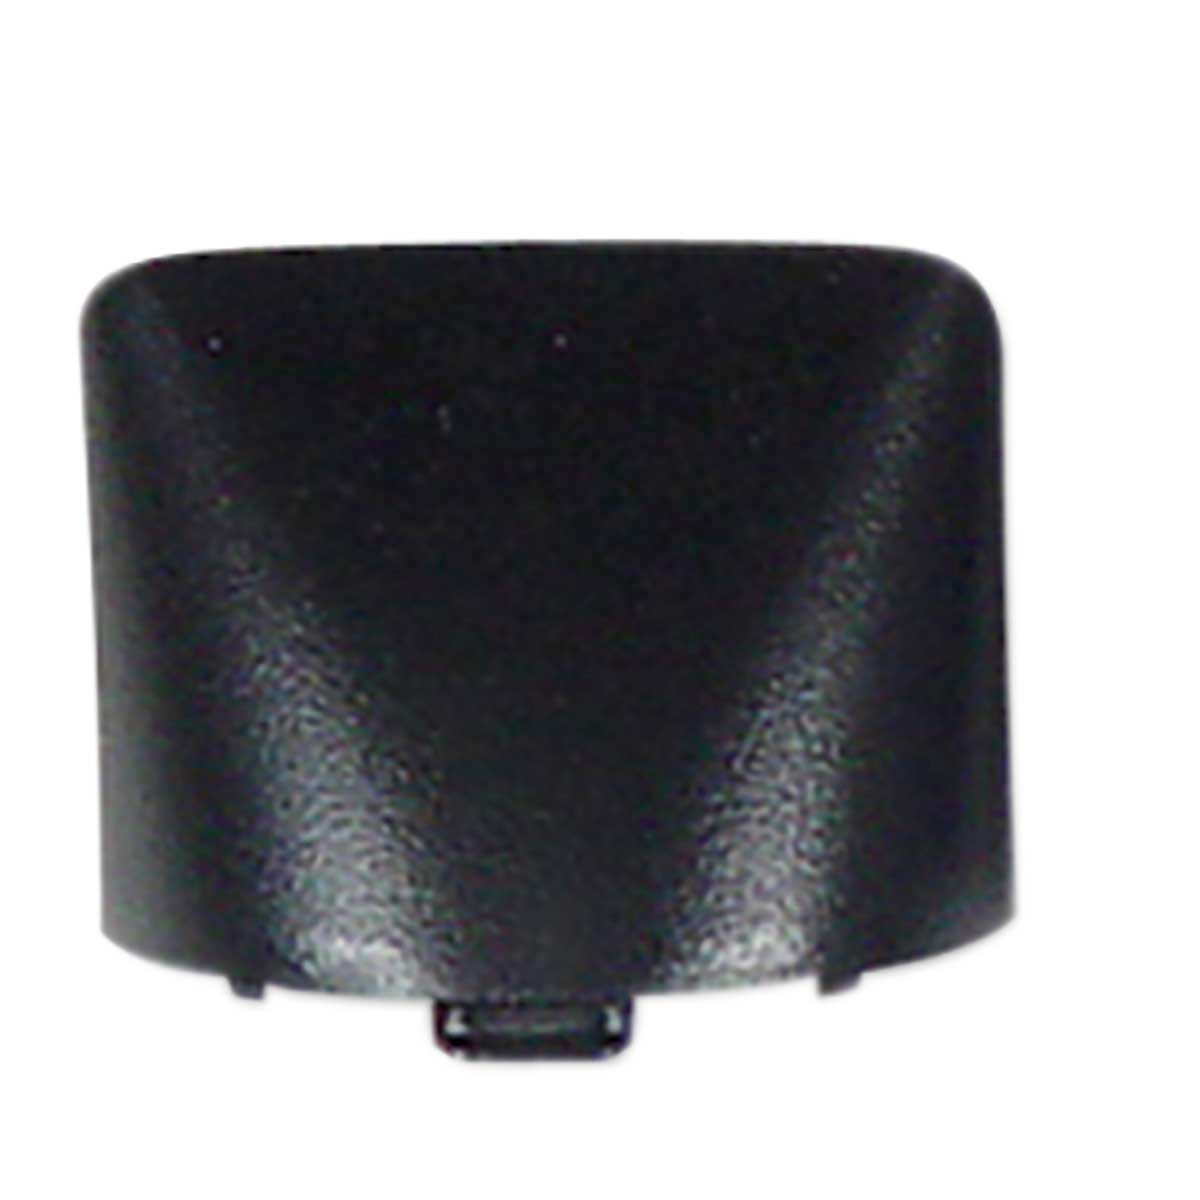 Black Drive Cap For Andis AGC 1 Speed And 2 Speed Clippers